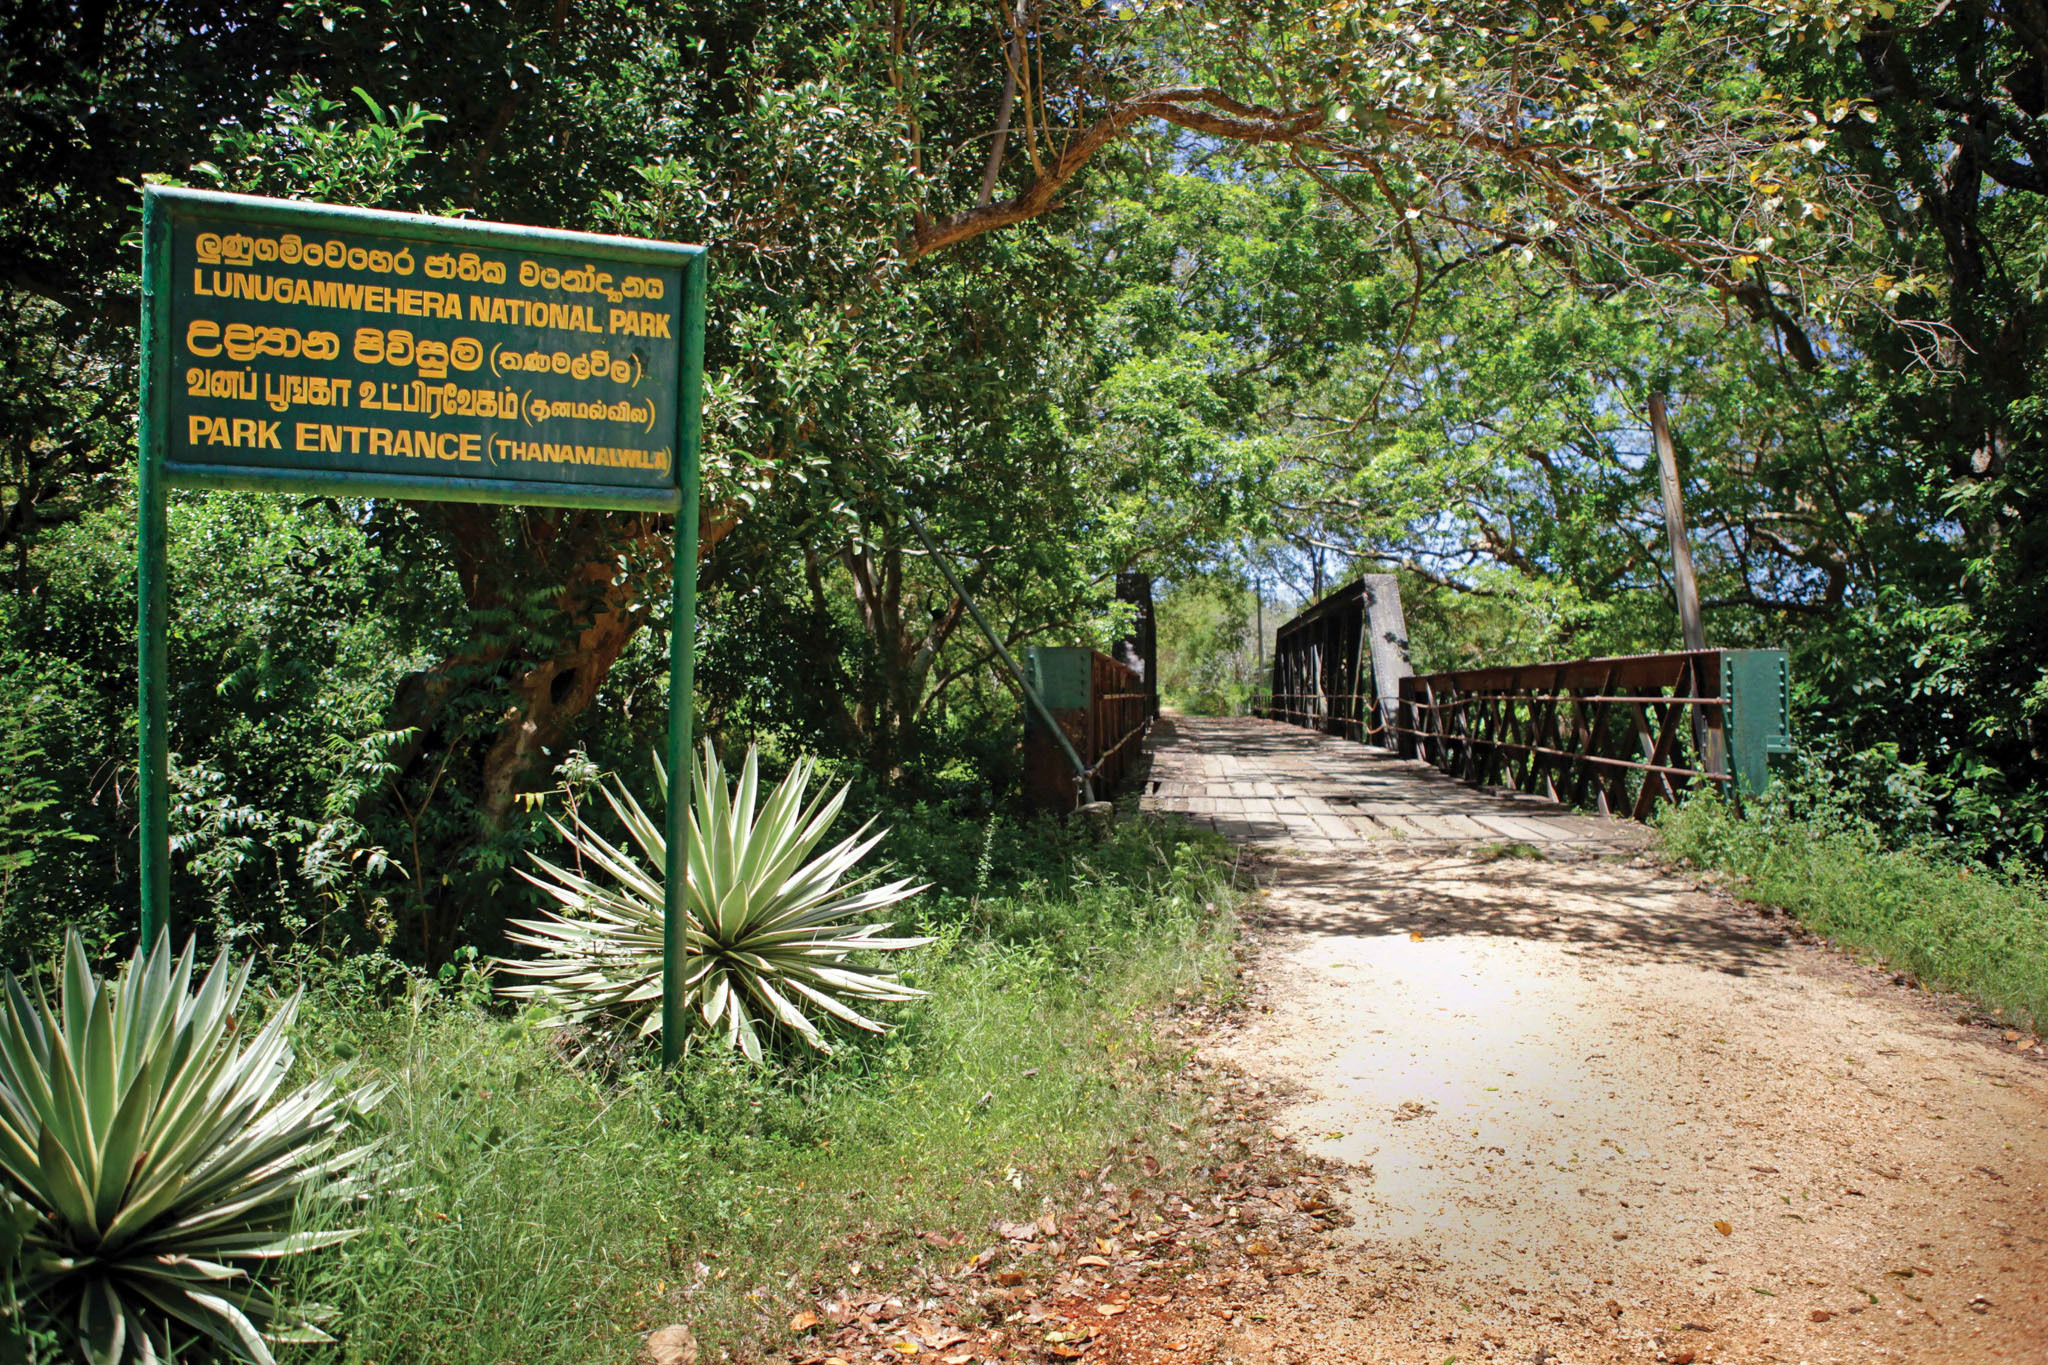 Lunugamvehera National Park